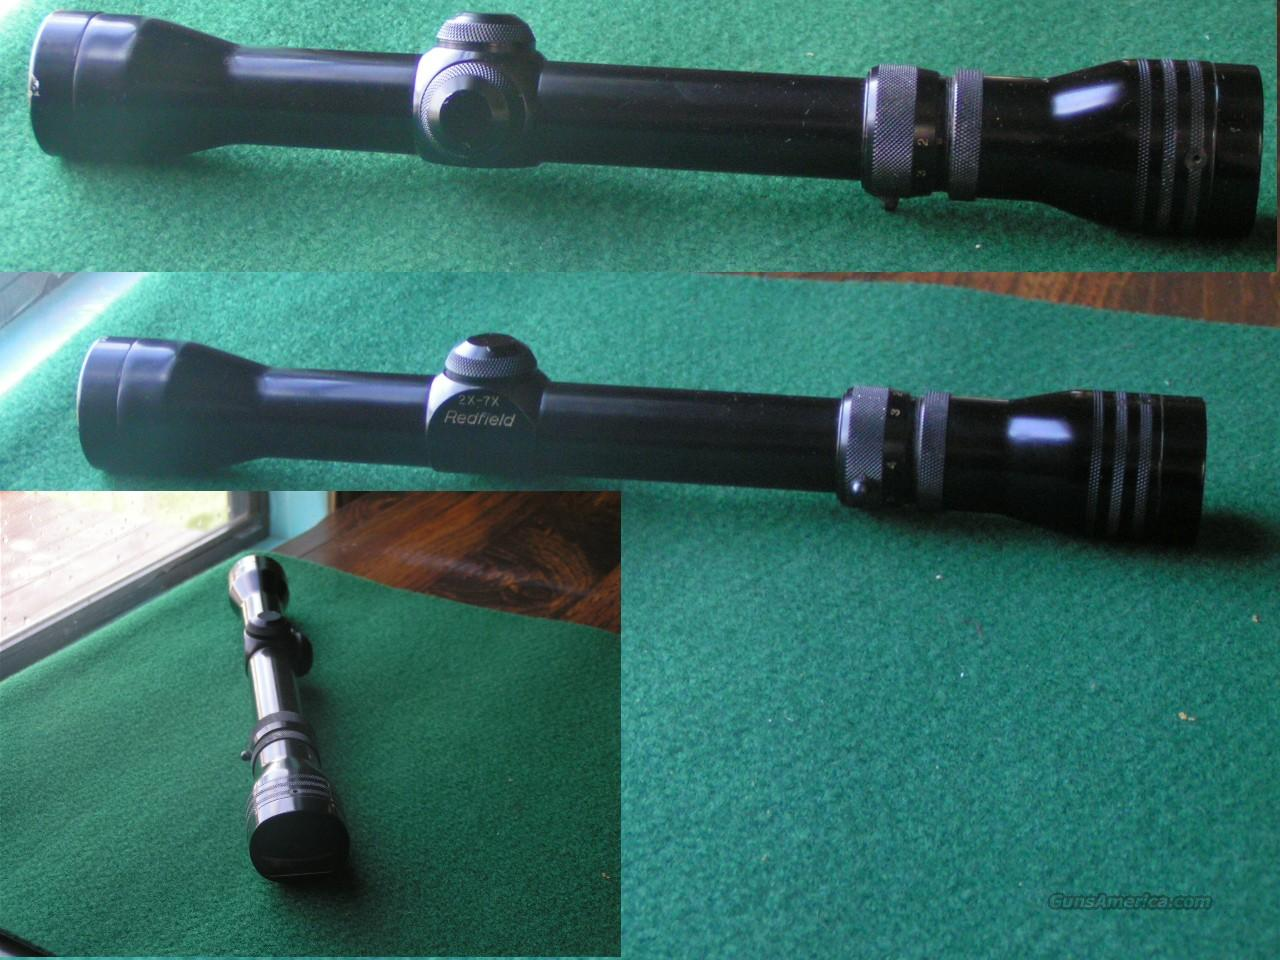 Redfield 2 x 7 Wideview  Non-Guns > Scopes/Mounts/Rings & Optics > Rifle Scopes > Variable Focal Length